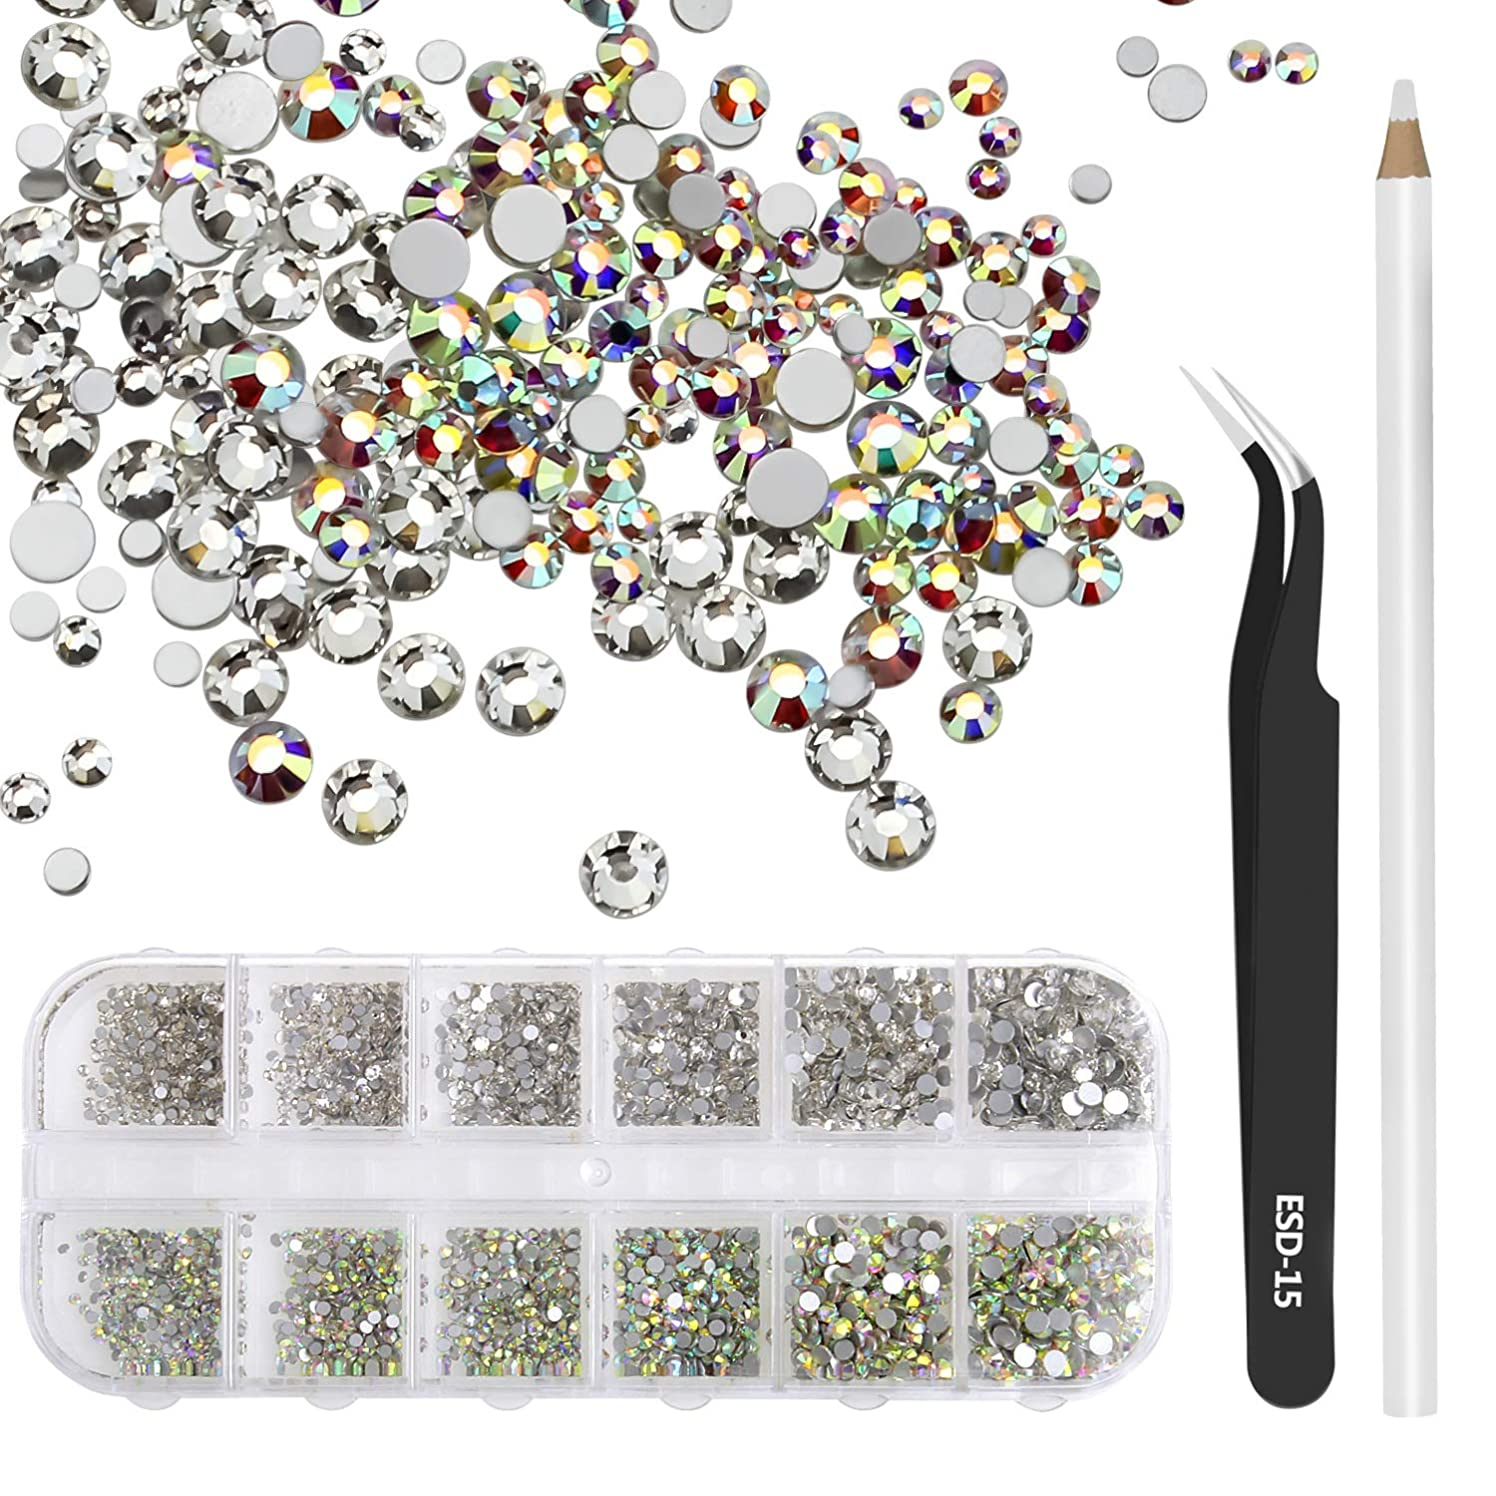 Dreamtop 3456 Pieces Crystal AB and Clear Nail Art Rhinestones Flatback Glass Charms Gems Stones in Storage Box with Tweezer and Rhinestones Picking Pen for Nail DIY Crafts, SS3 4 5 6 8 10